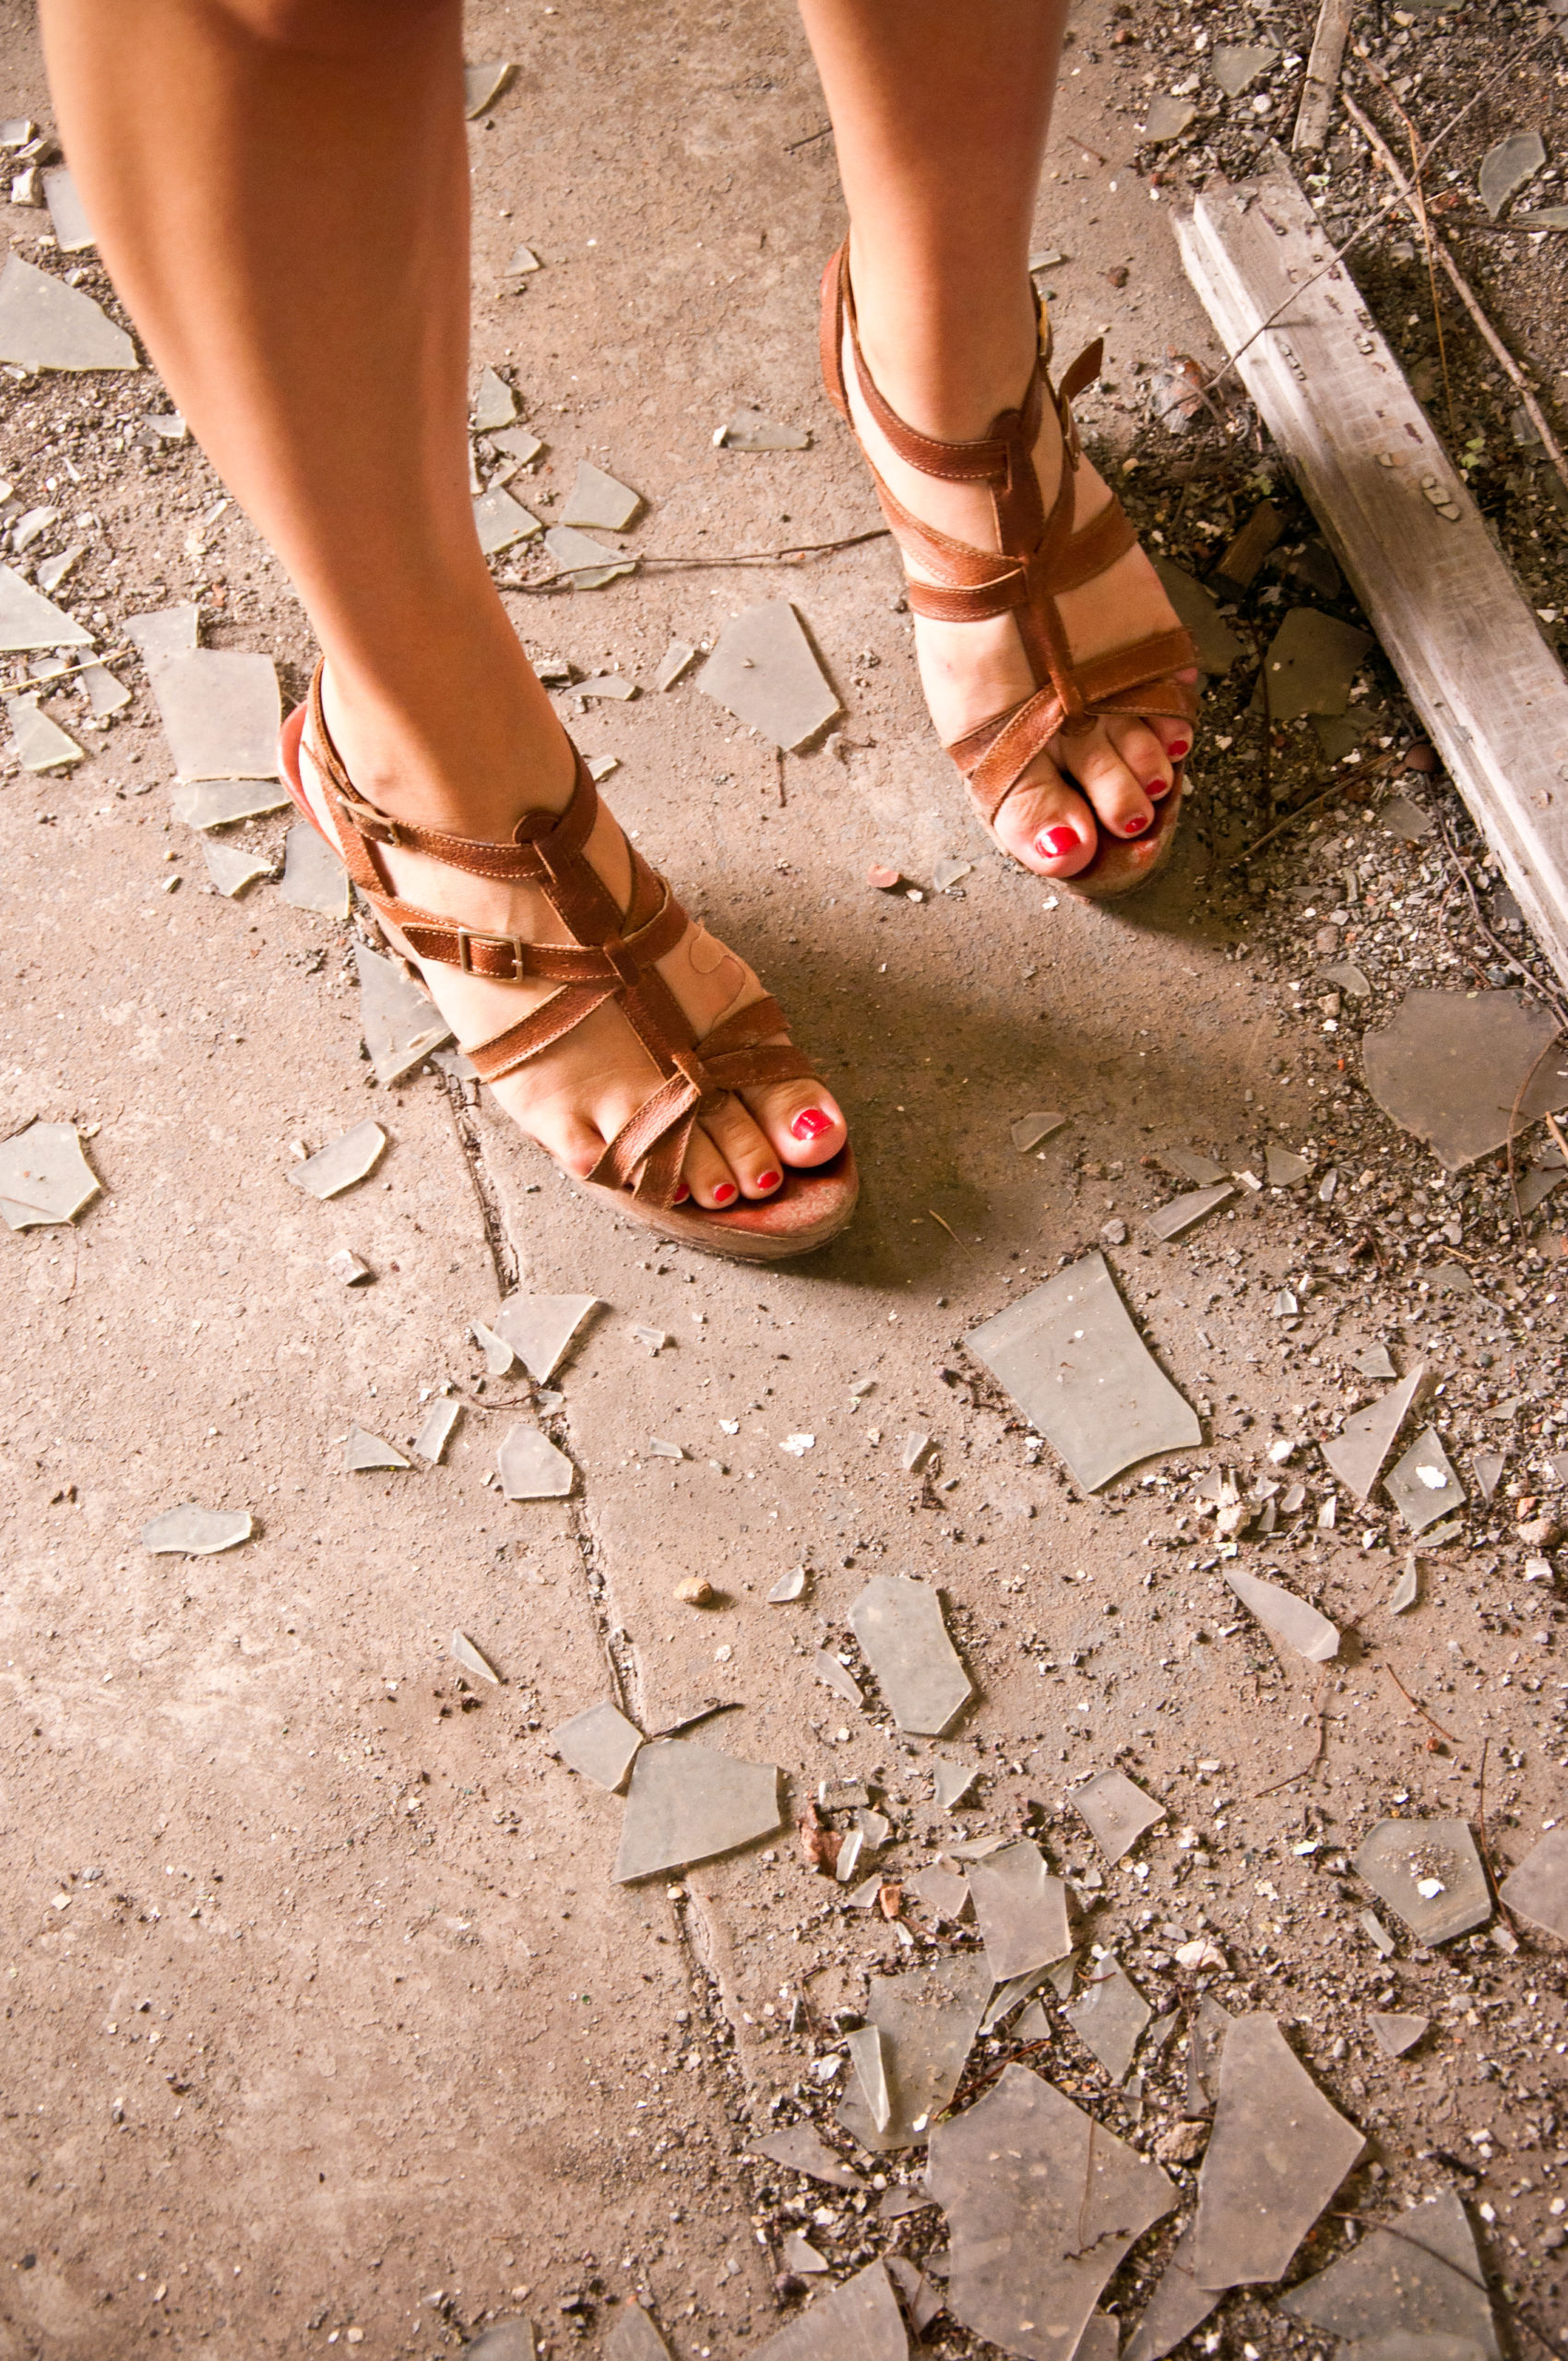 Sandals and Glass, McMillian Water Treatment Plant, Washington D.C., September 2011